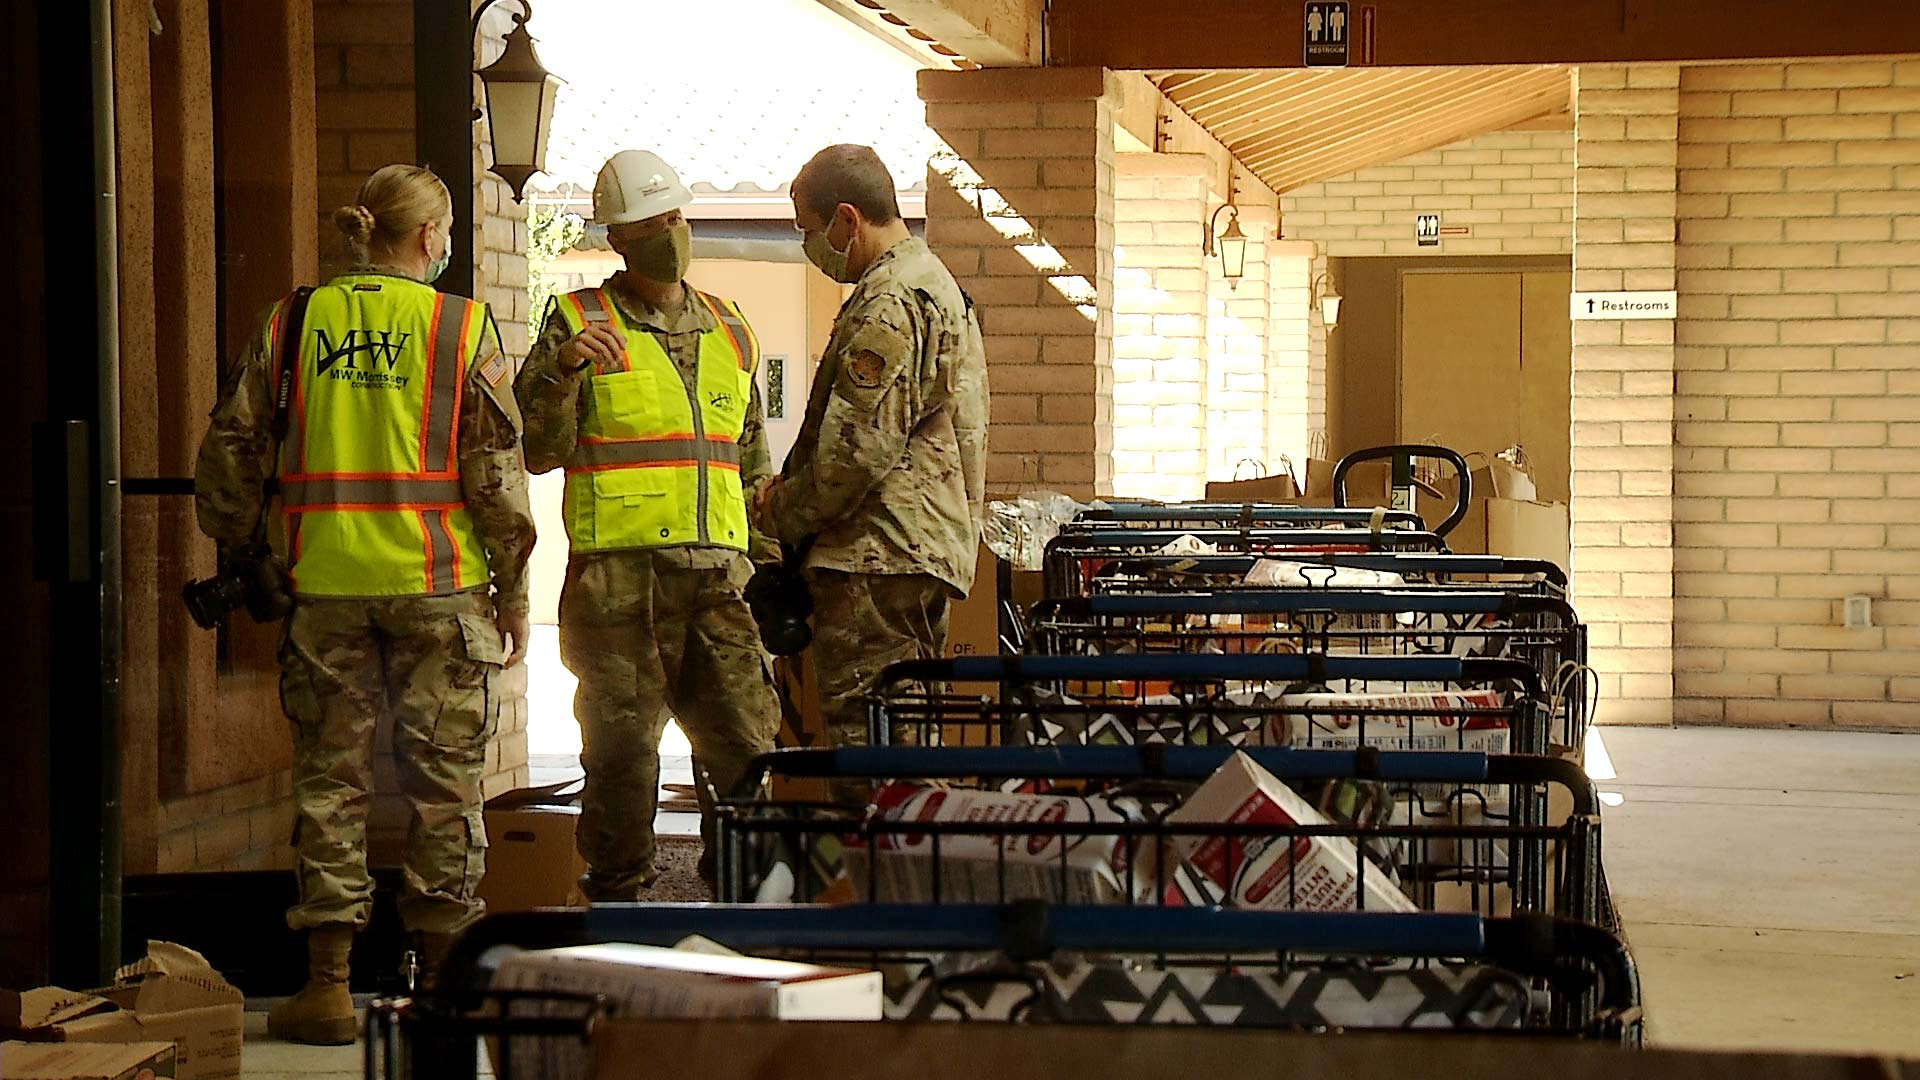 Members of the Arizona National Guard converse near a row of shopping carts at a food bank in Sahuarita on Feb. 18, 2021.